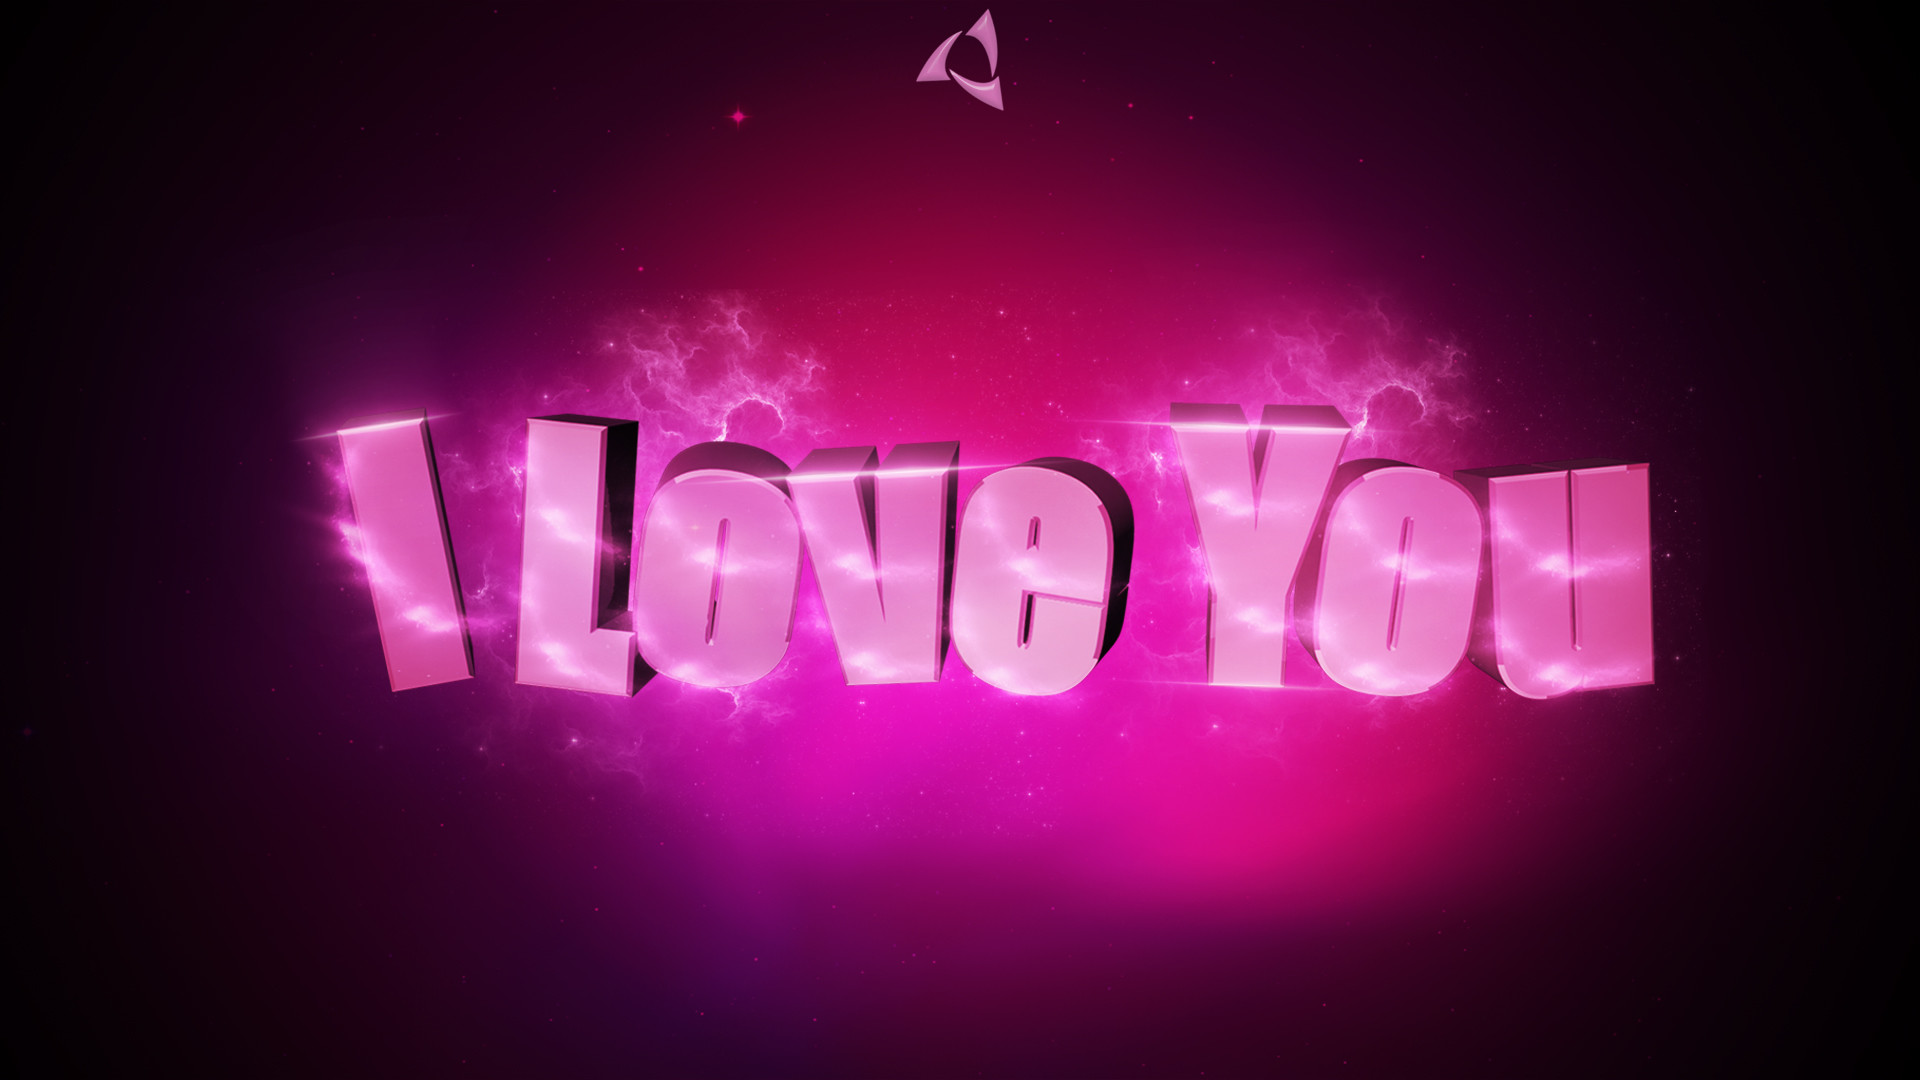 1920x1080 Wallpapers Of I Love You Wallpaper